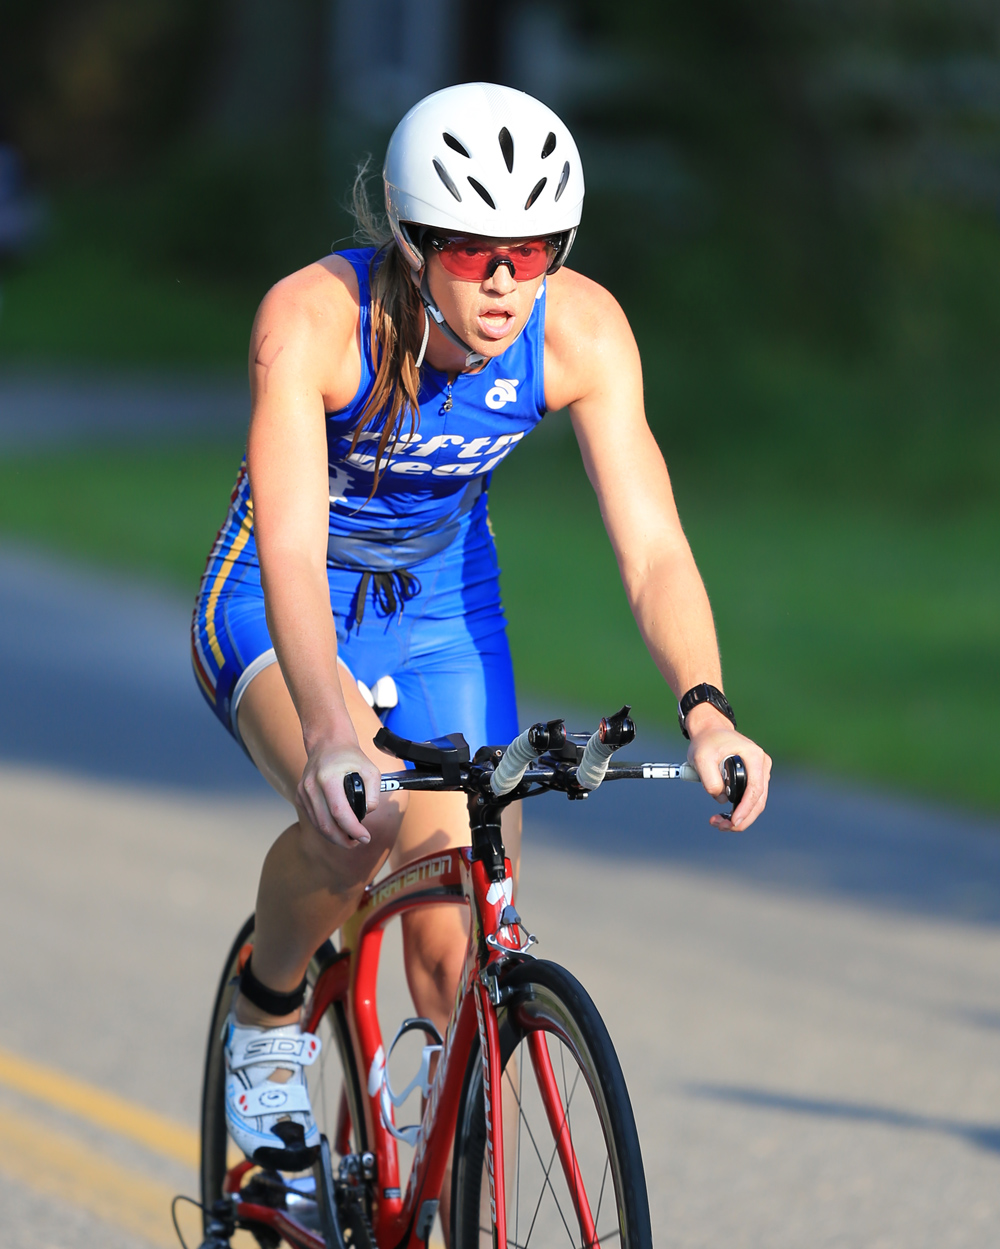 Jennifer Place of Southold leads the women's division during the Bicycle leg of the Mighty North Fork Triathlon Sunday. (Credit: Daniel DeMato)